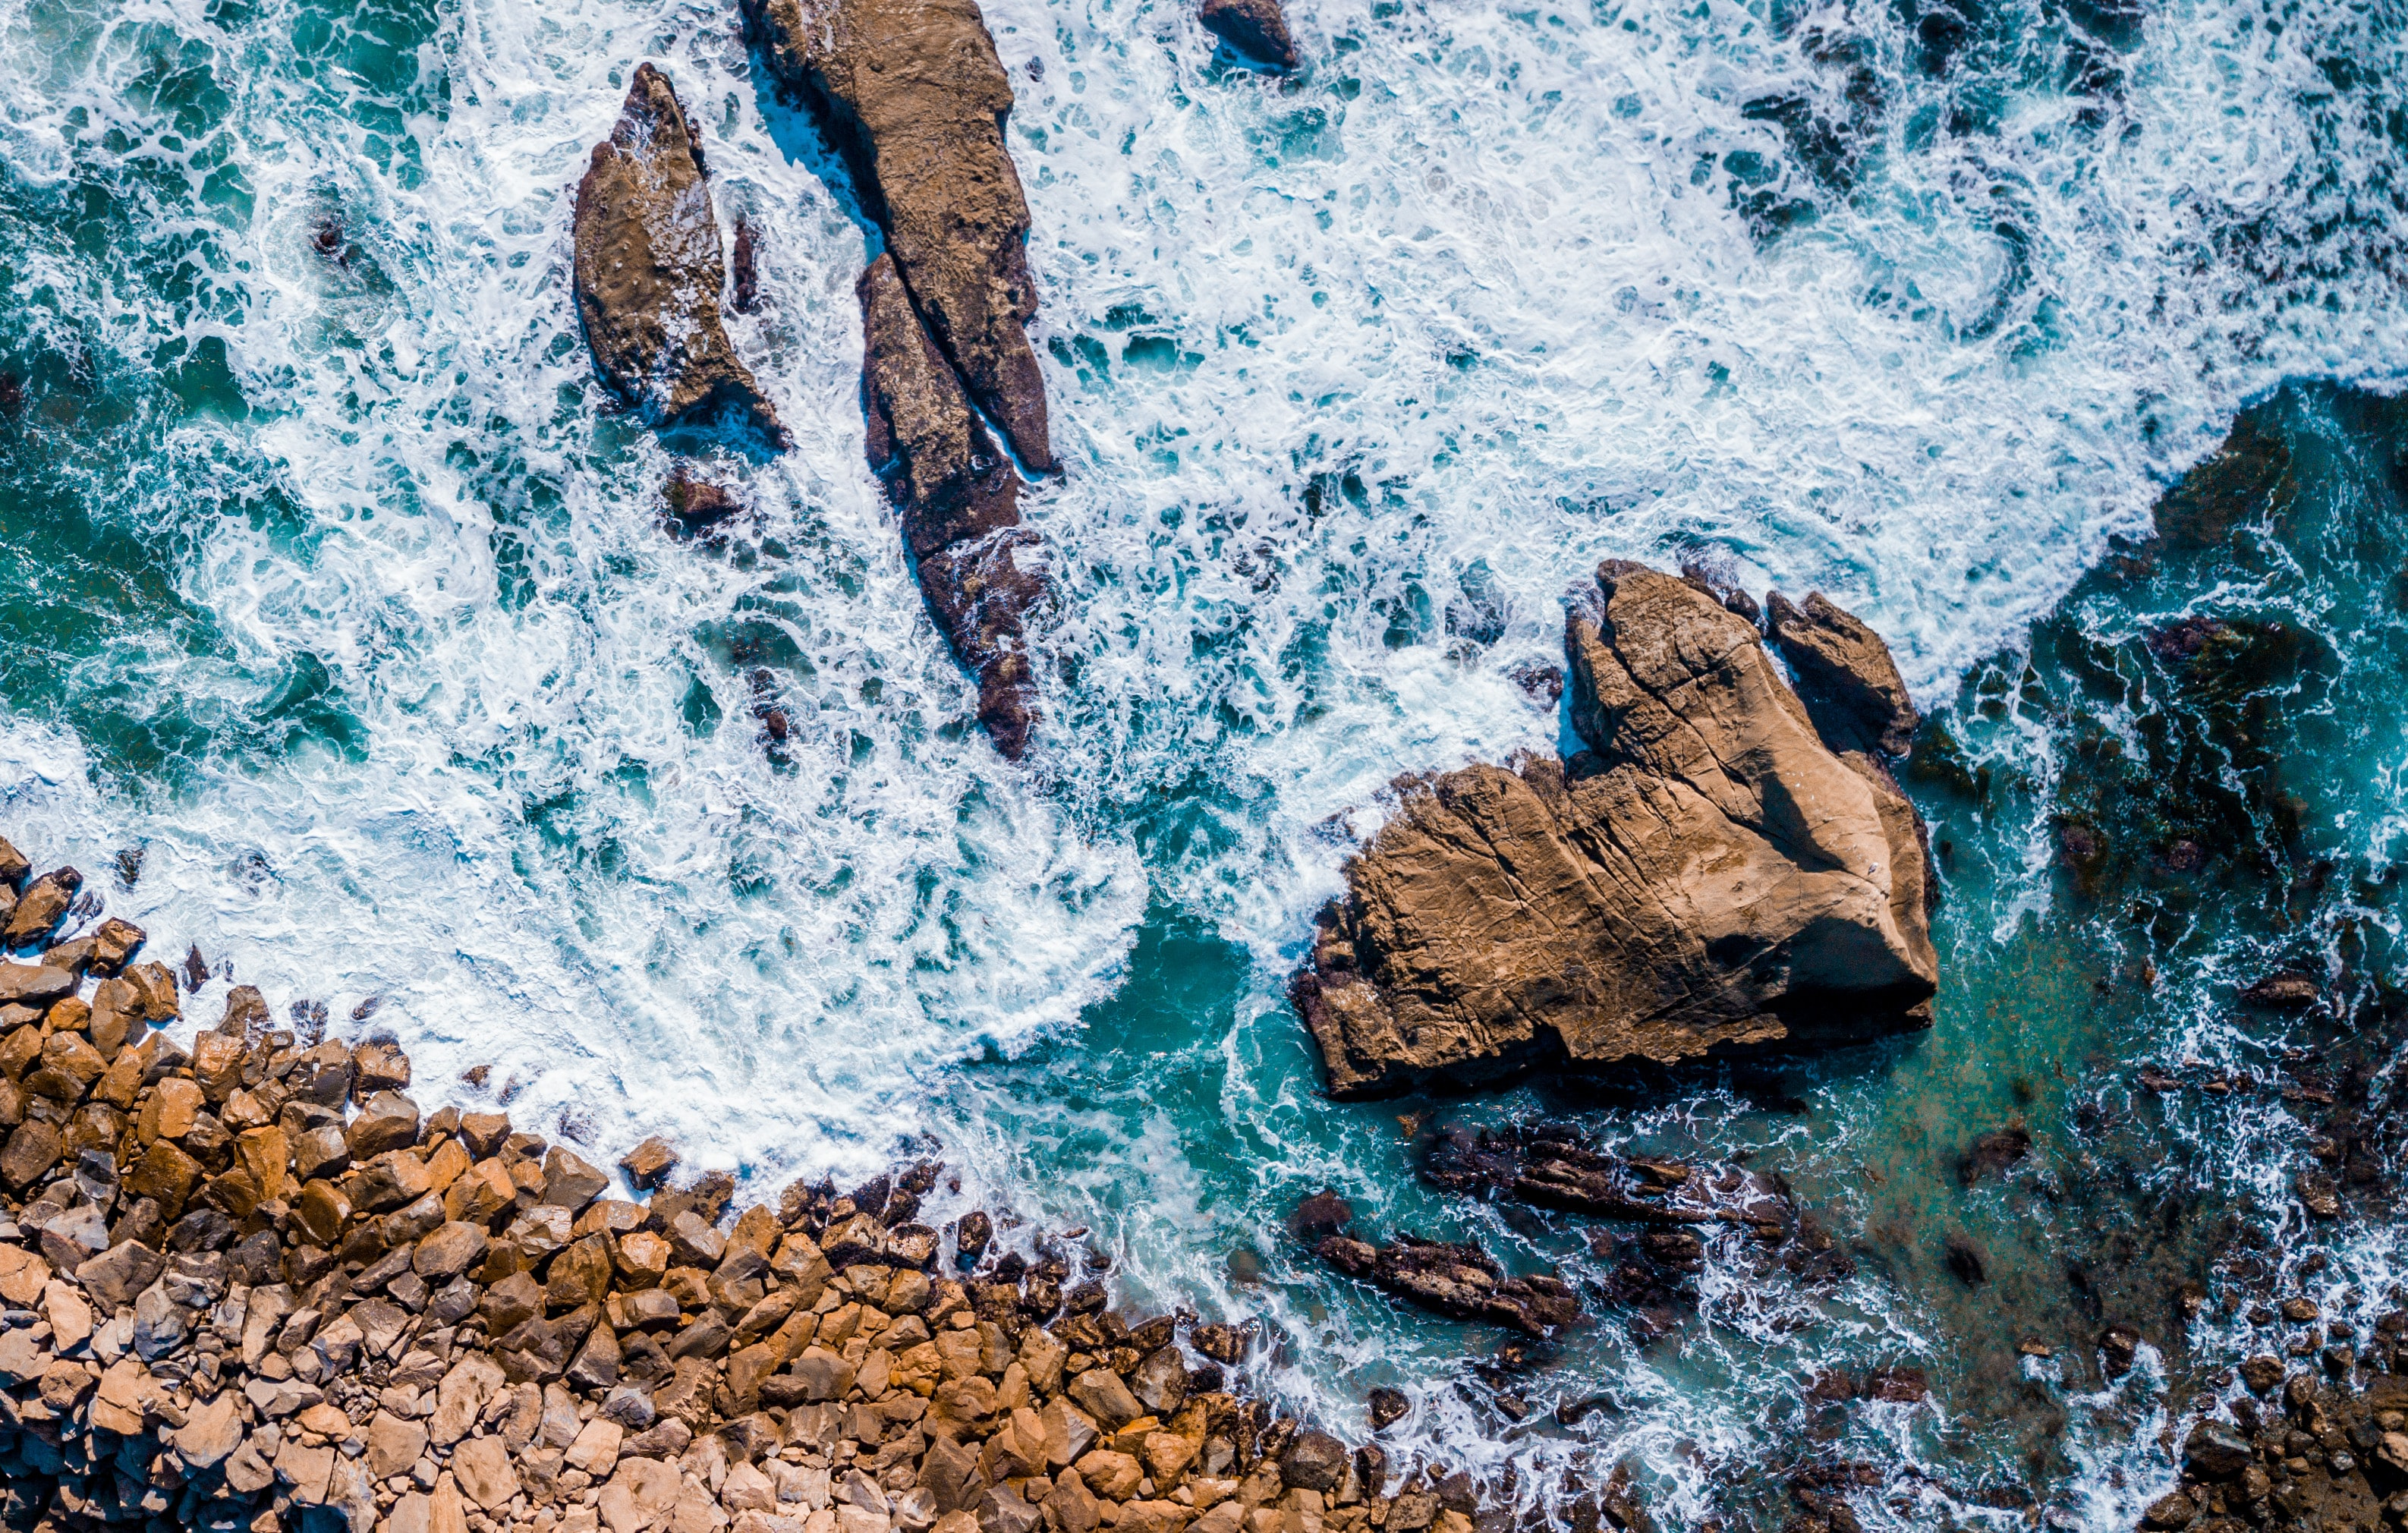 bird's eye view photography of seawaves splashing on rock during daytime